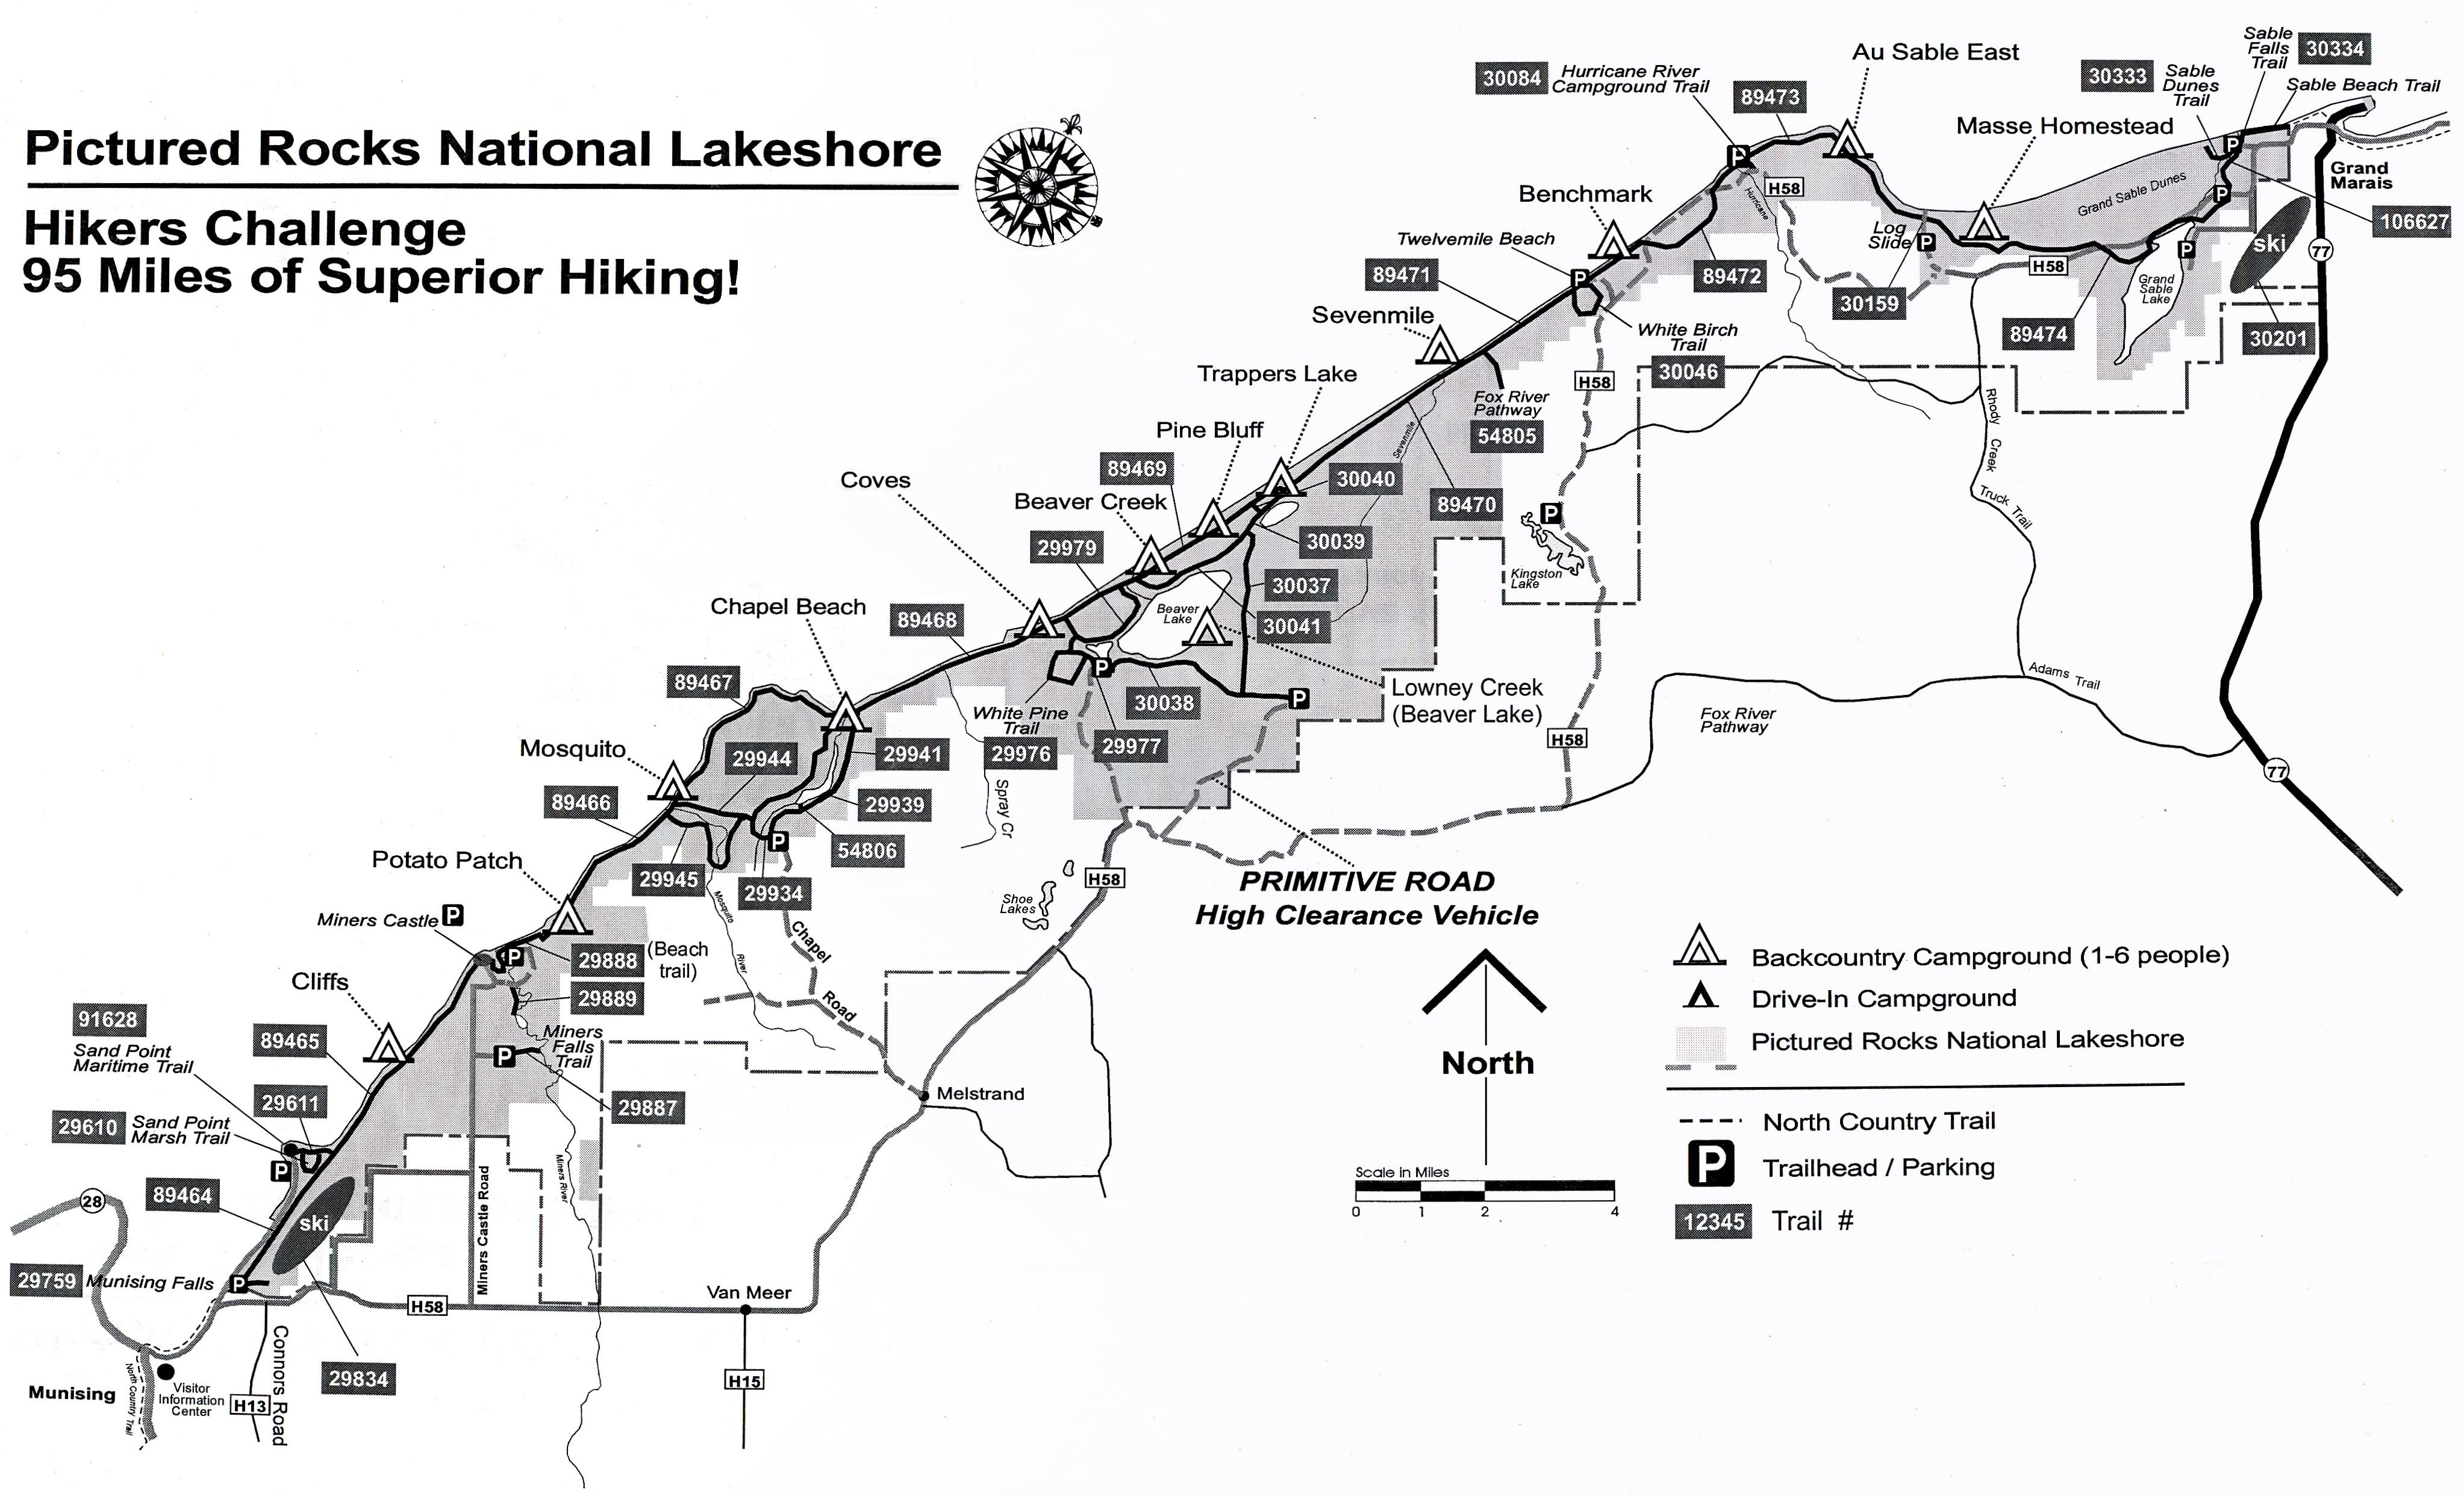 Pictured Rocks Hikers Challange Map - Pictured Rocks National ...